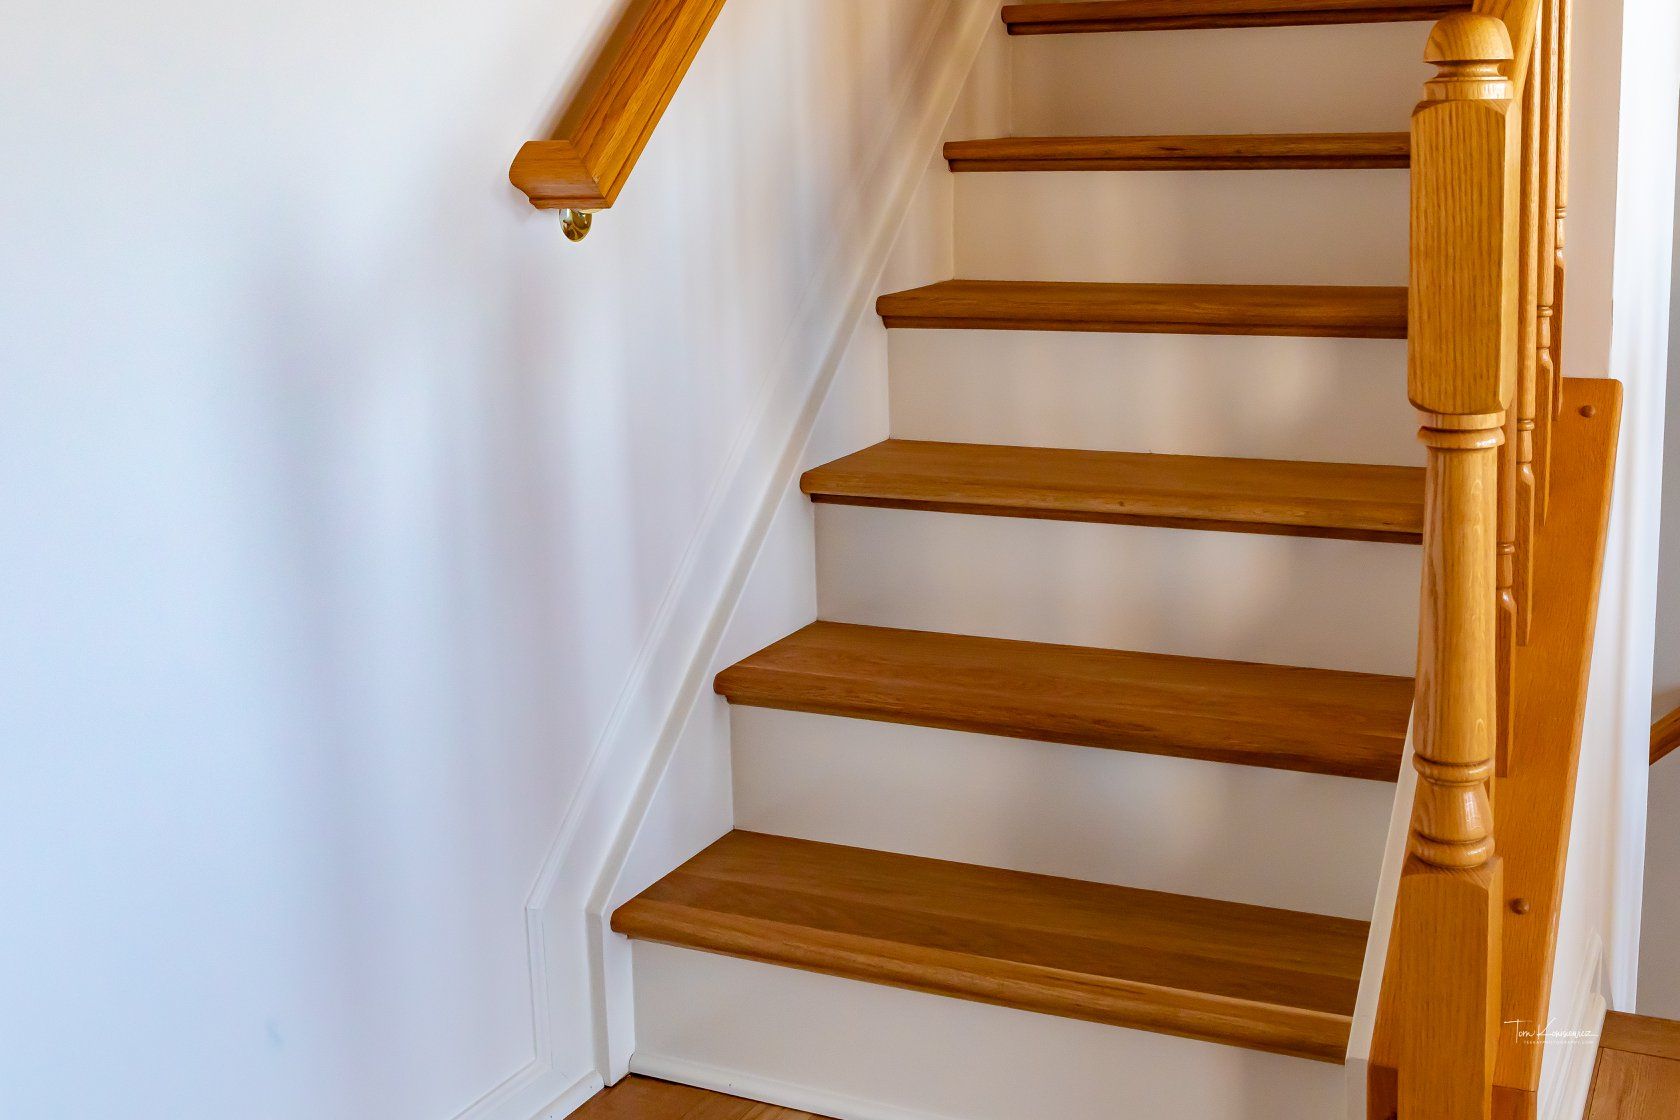 Edgewater-Preverco-Brushed-White-Oak-stairs.jpg